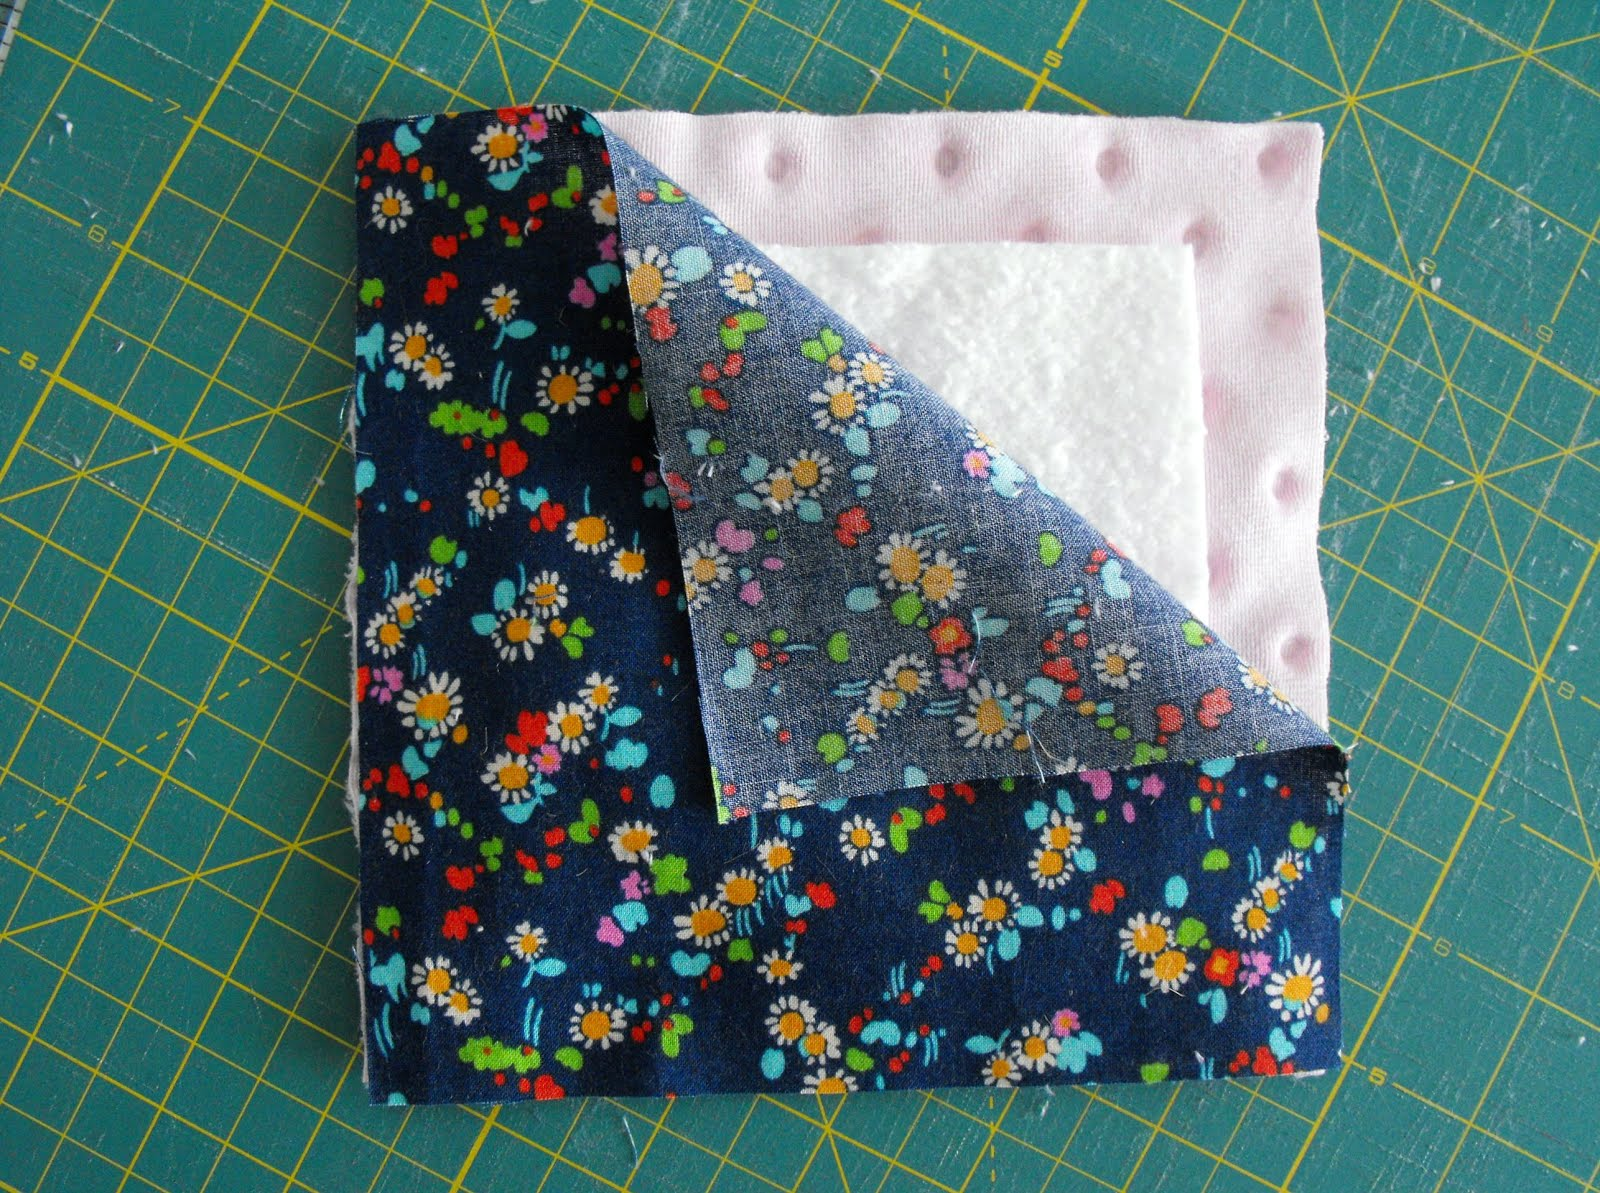 Layering Fabric and Batting